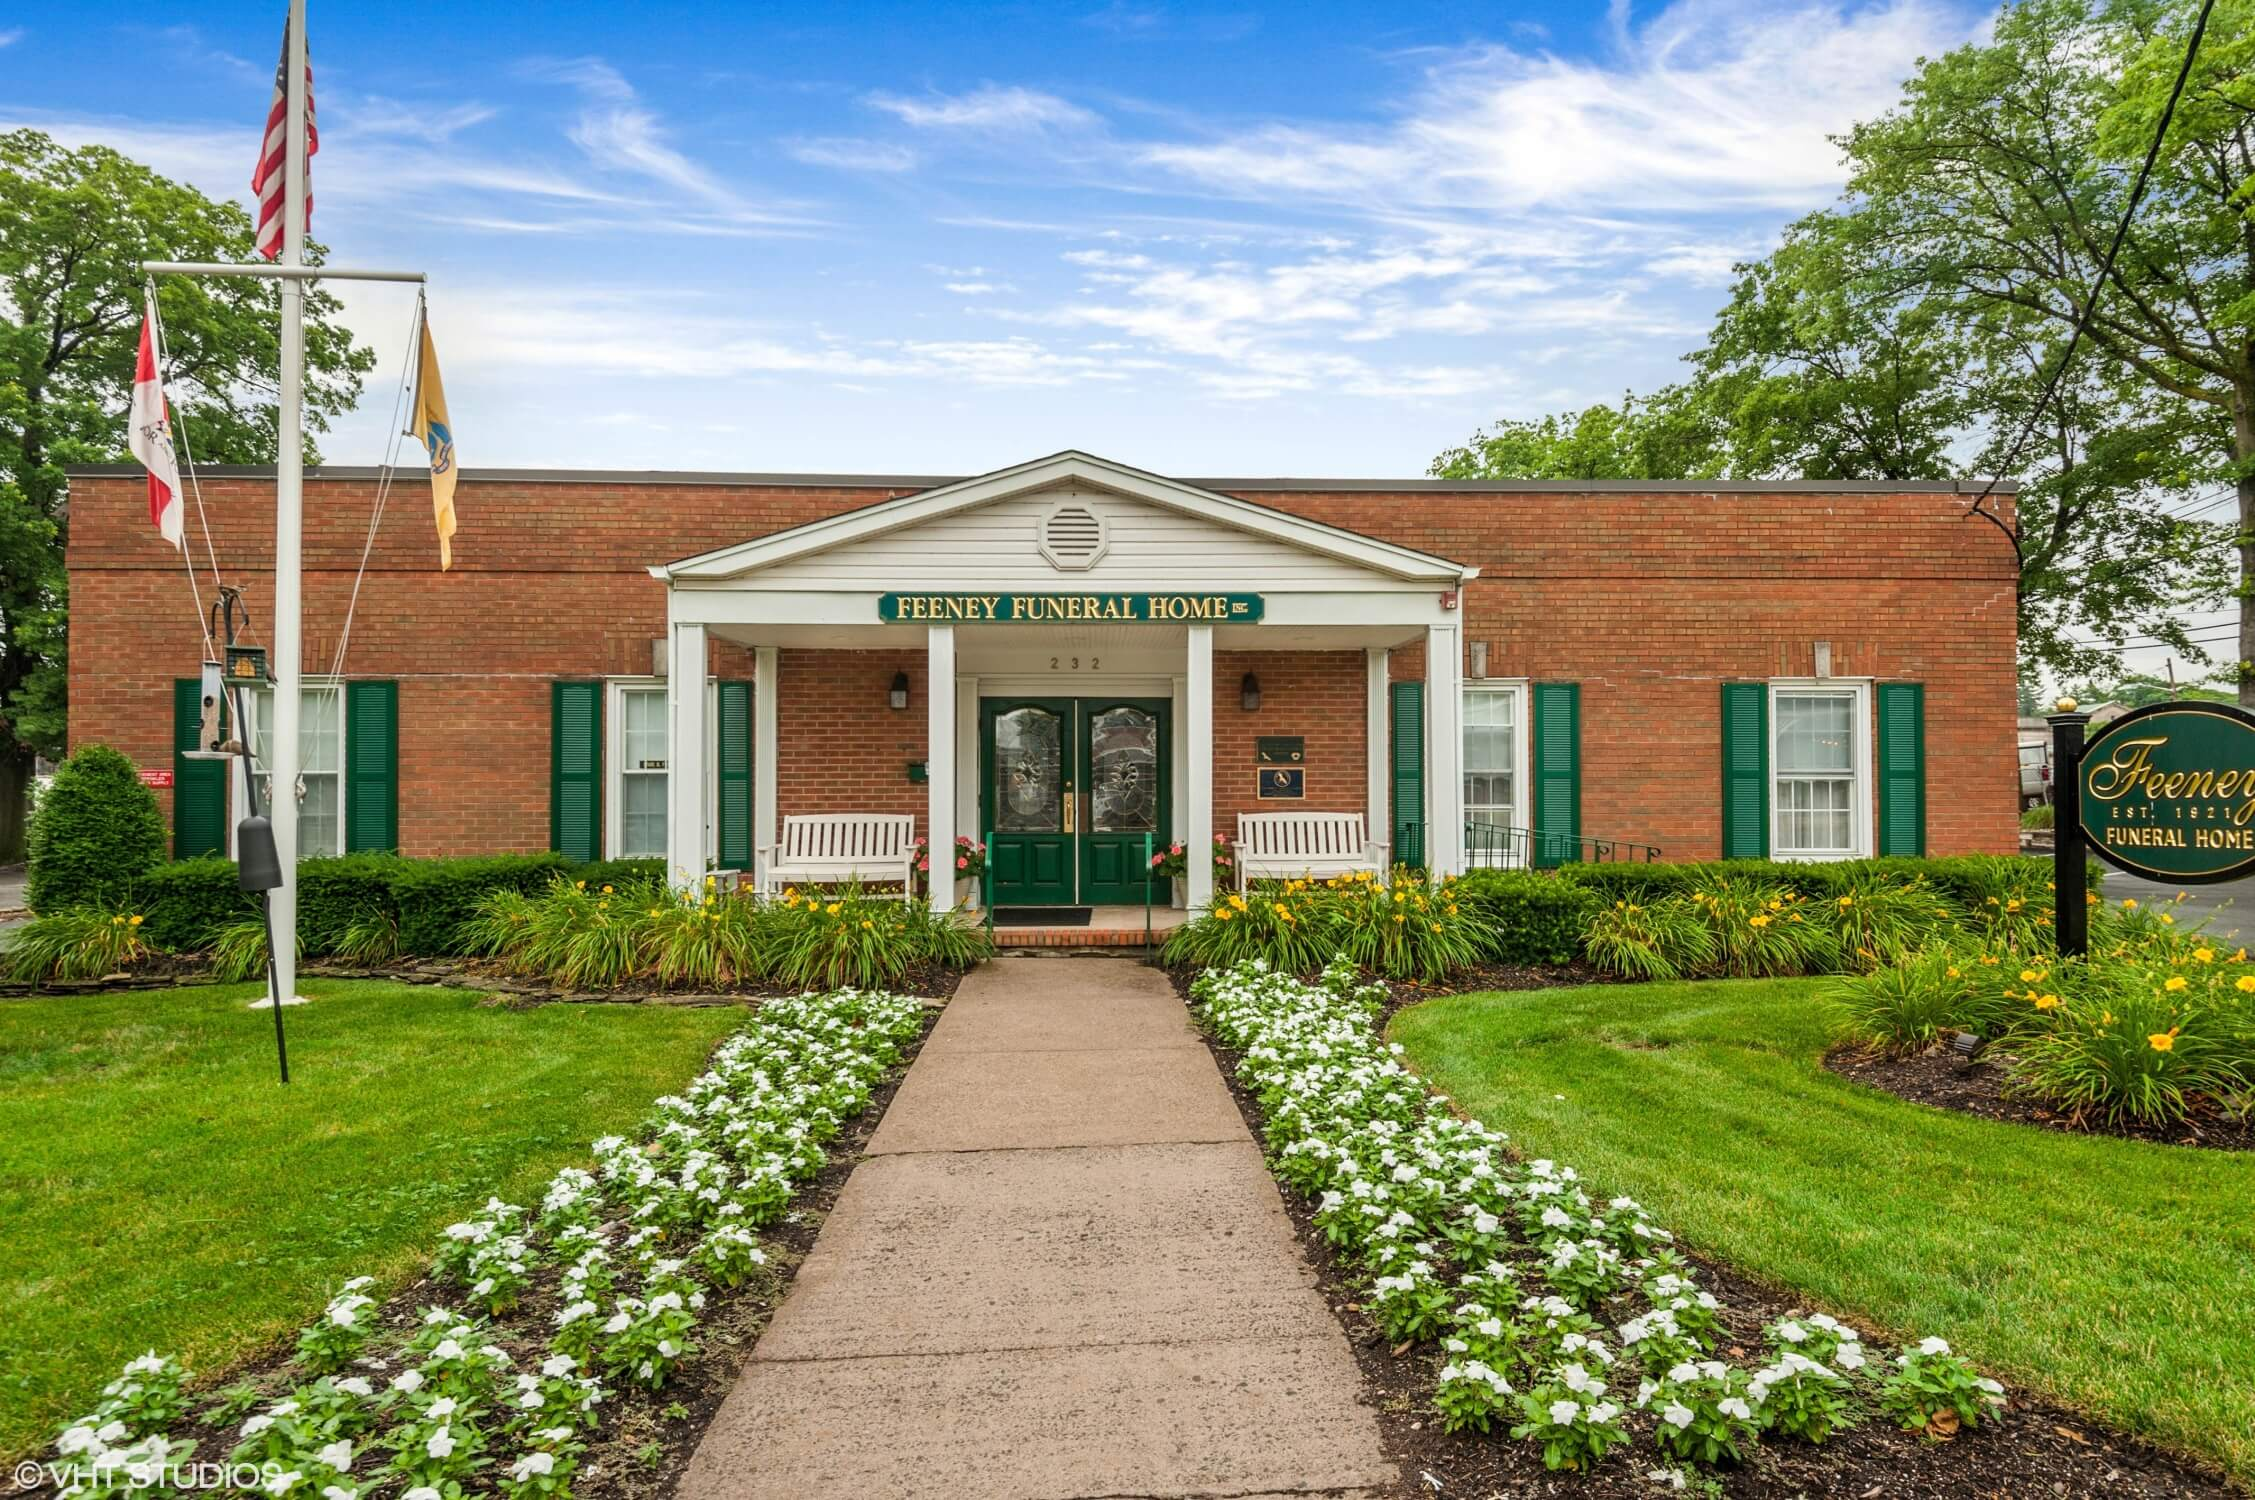 tour our funeral home